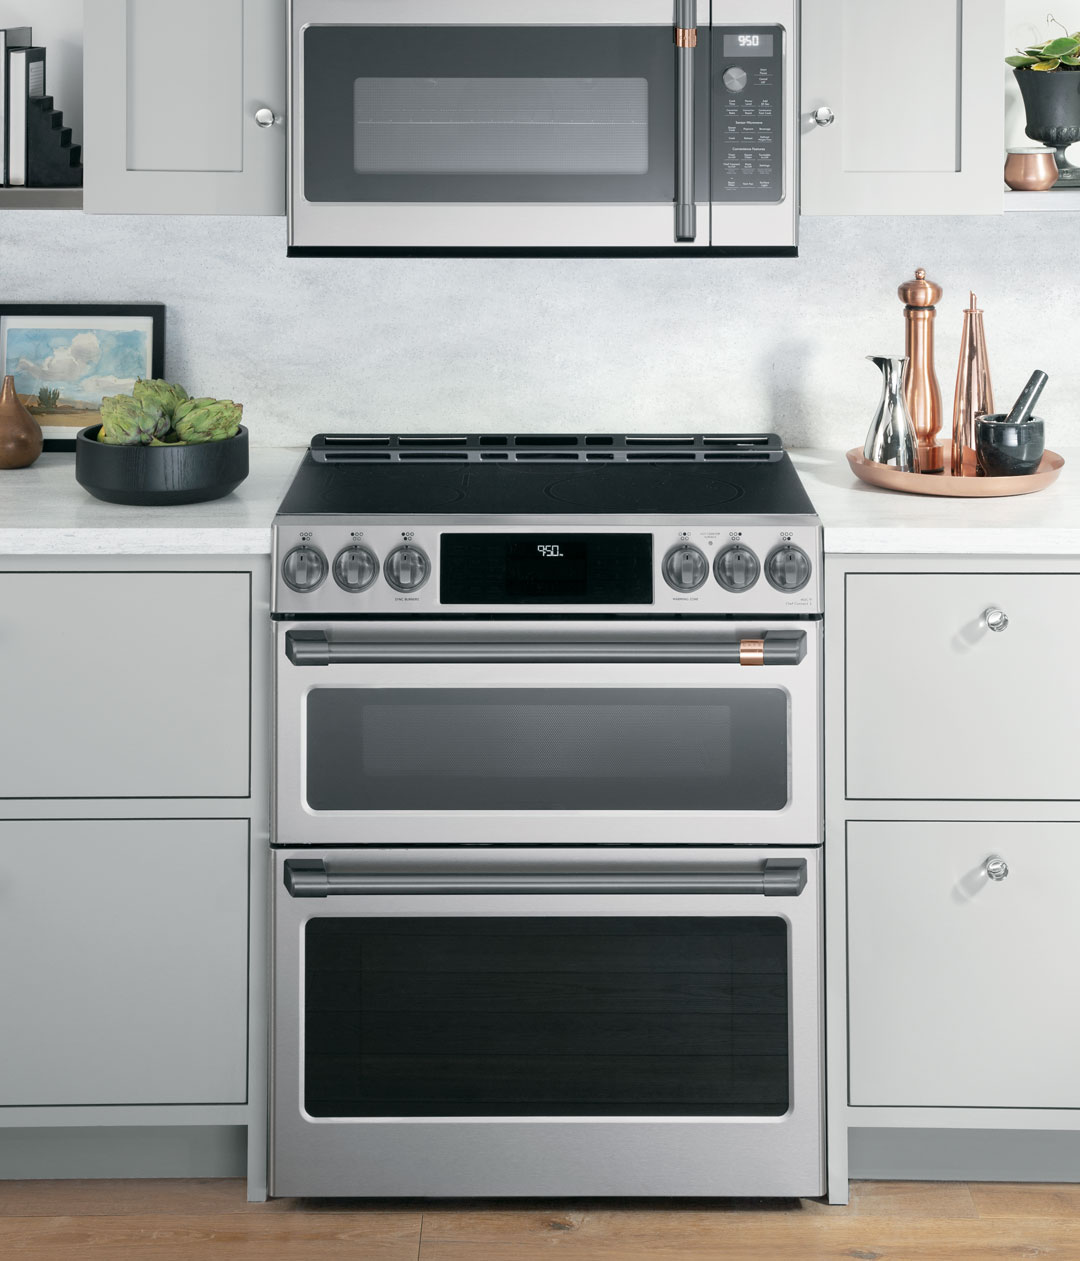 stainless steel double oven range with grey cabinets